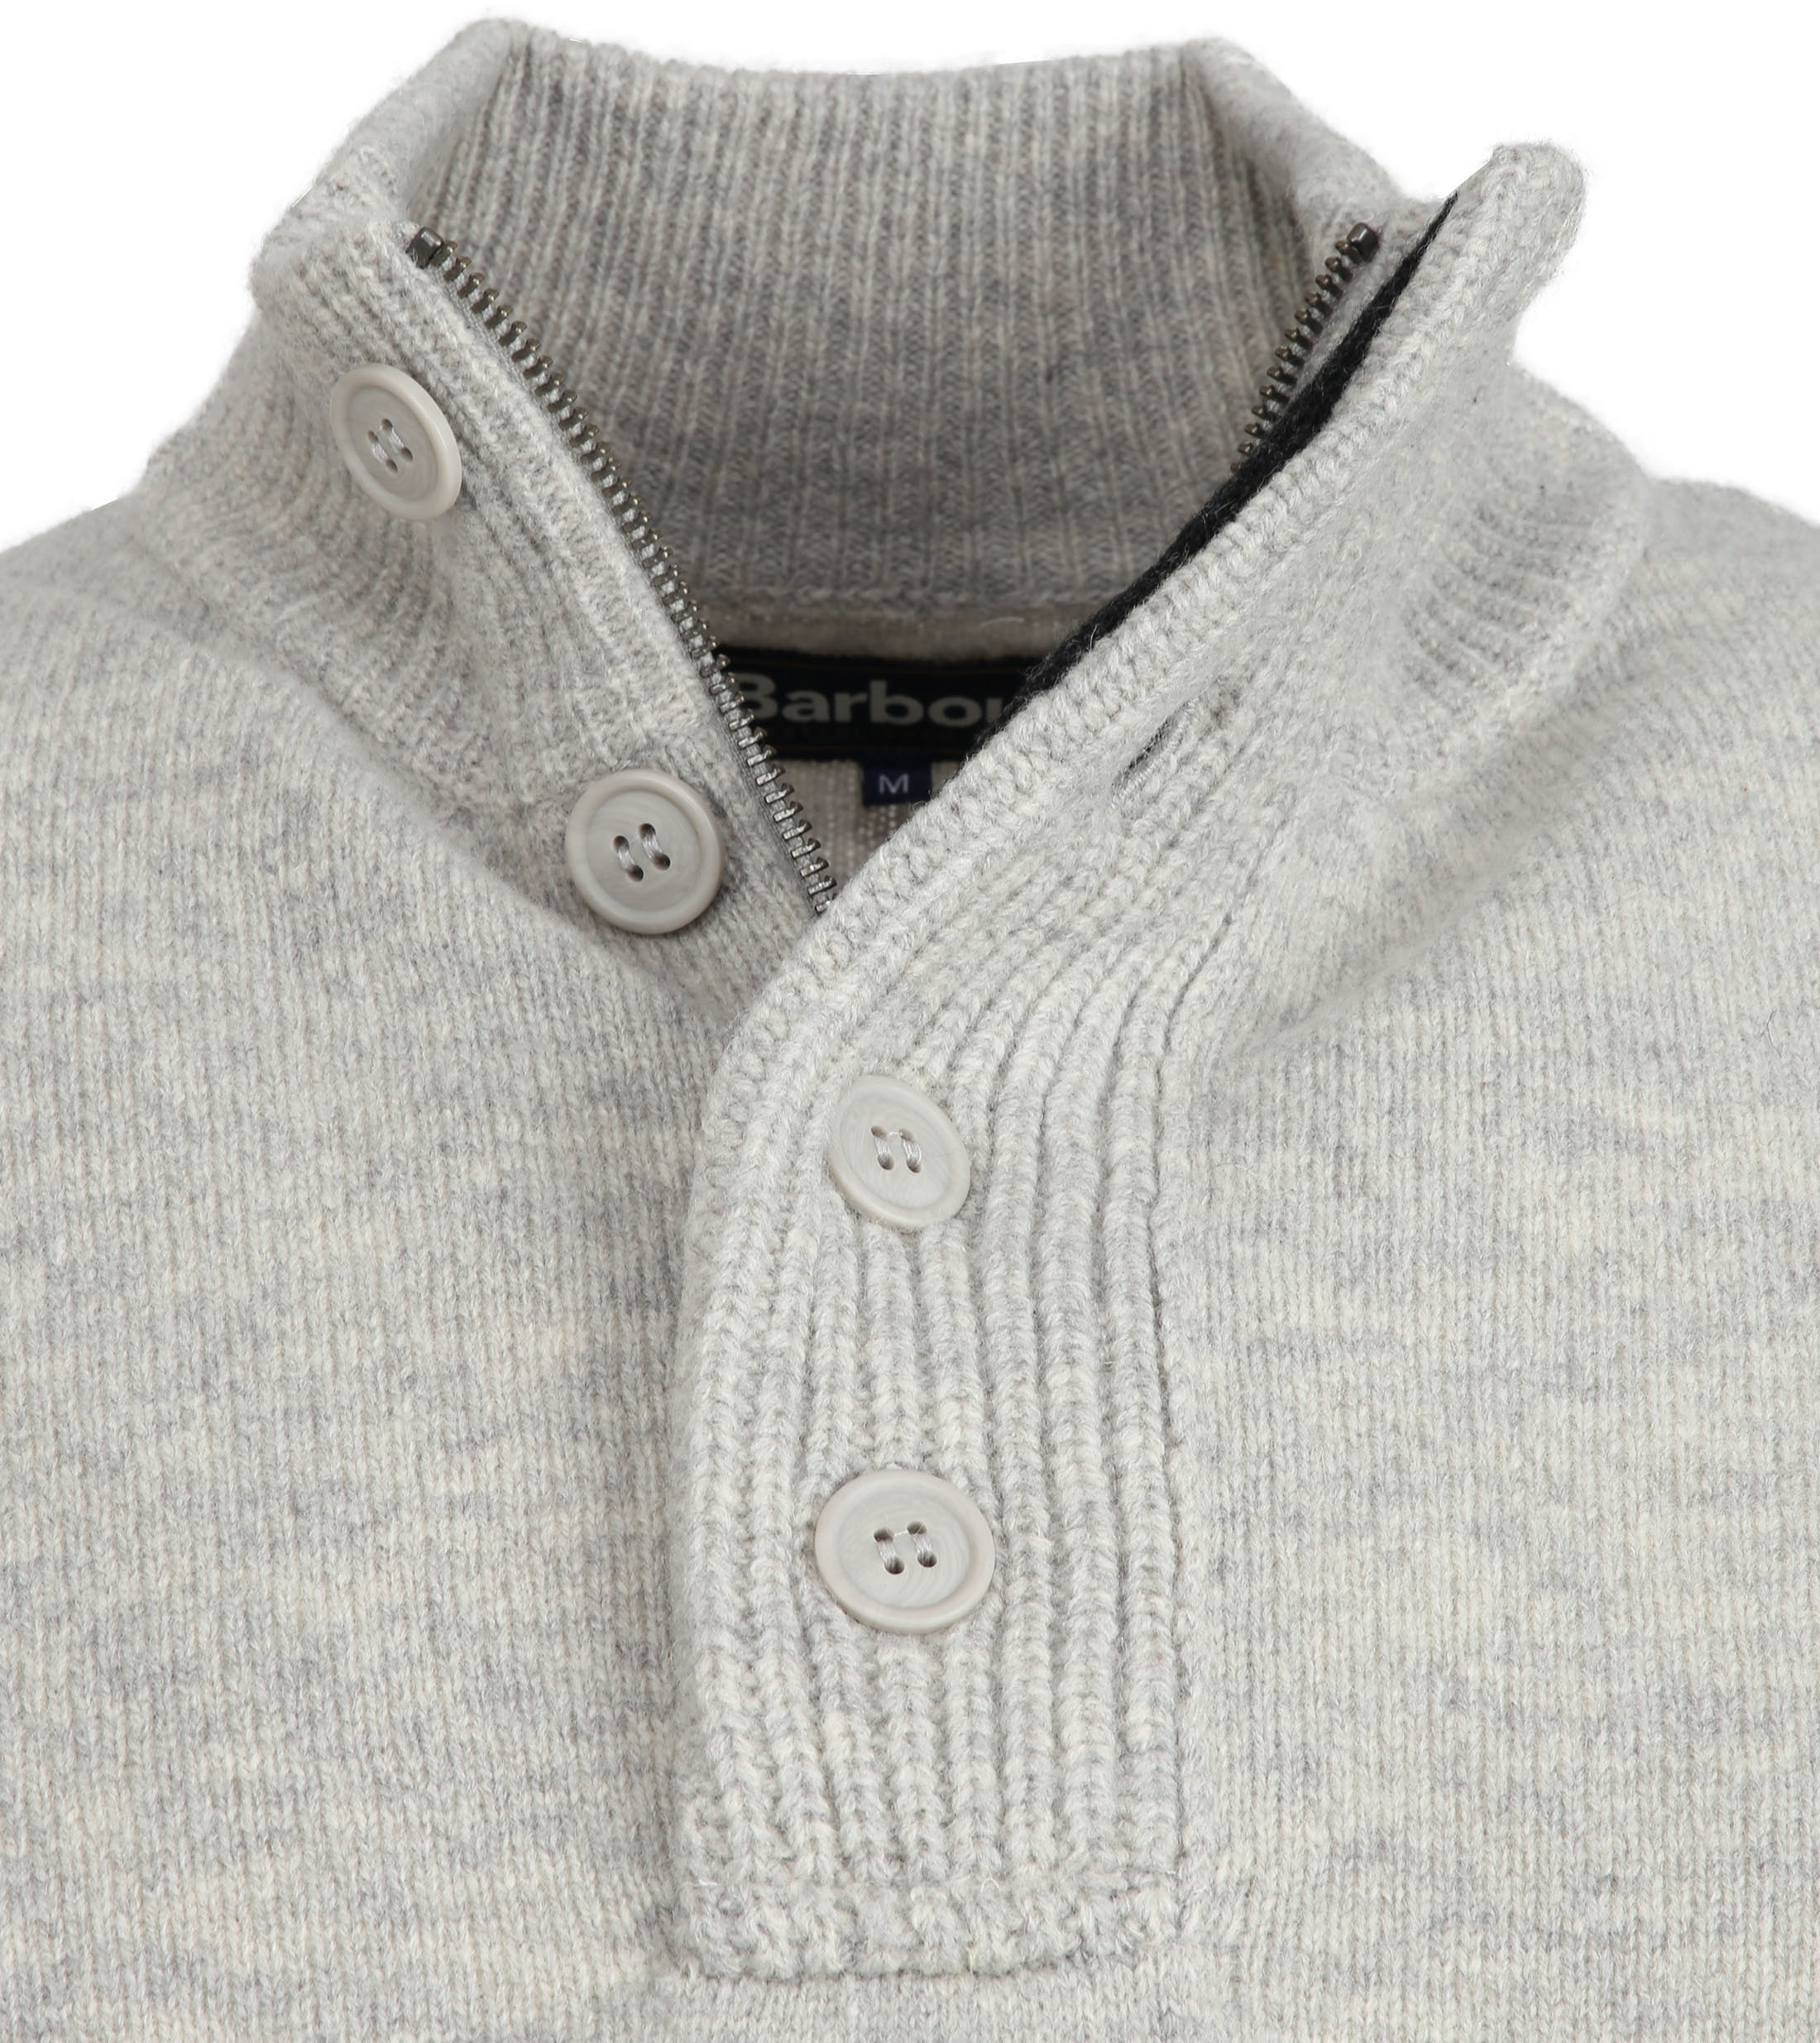 Barbour Sweater Wool Patch Grey foto 1